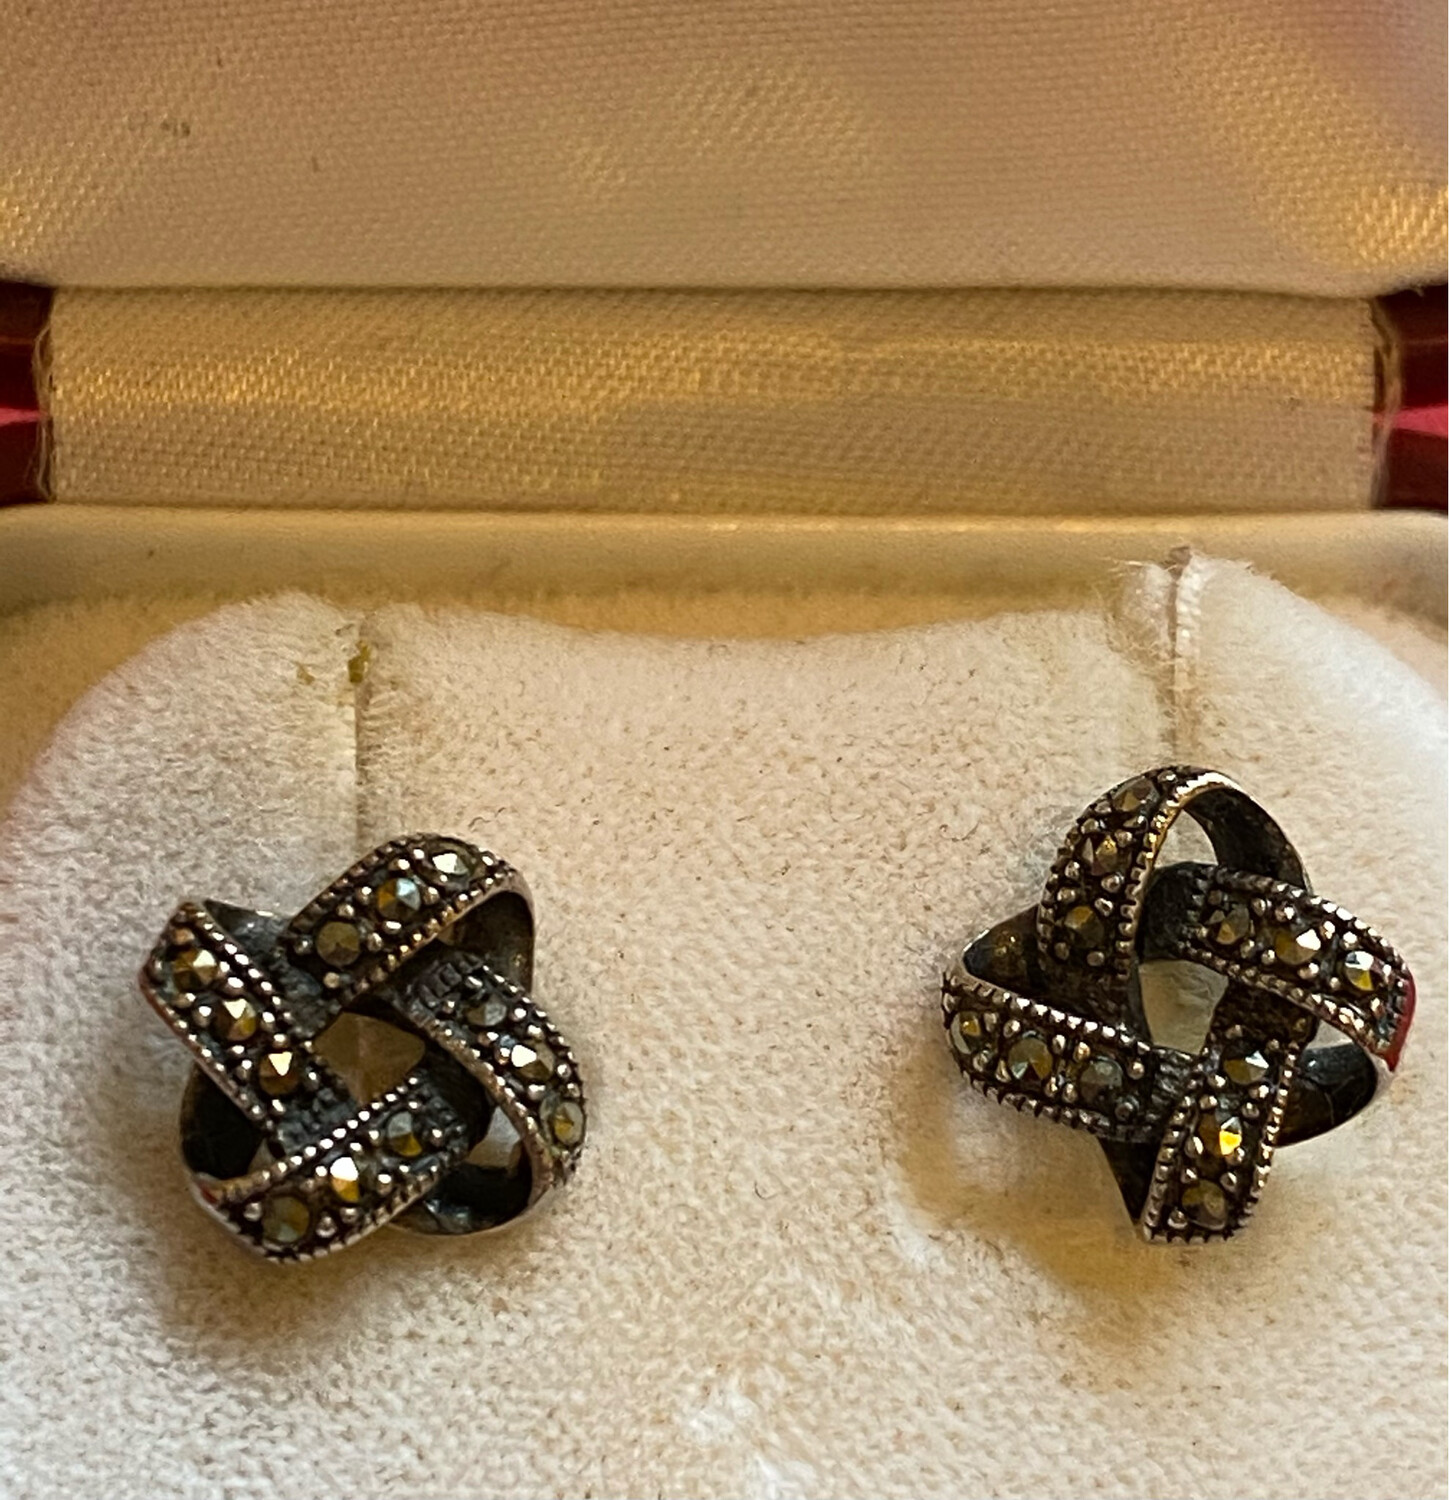 Vintage Marcasite And Silver (.825) Stud Earrings - Lovely Set